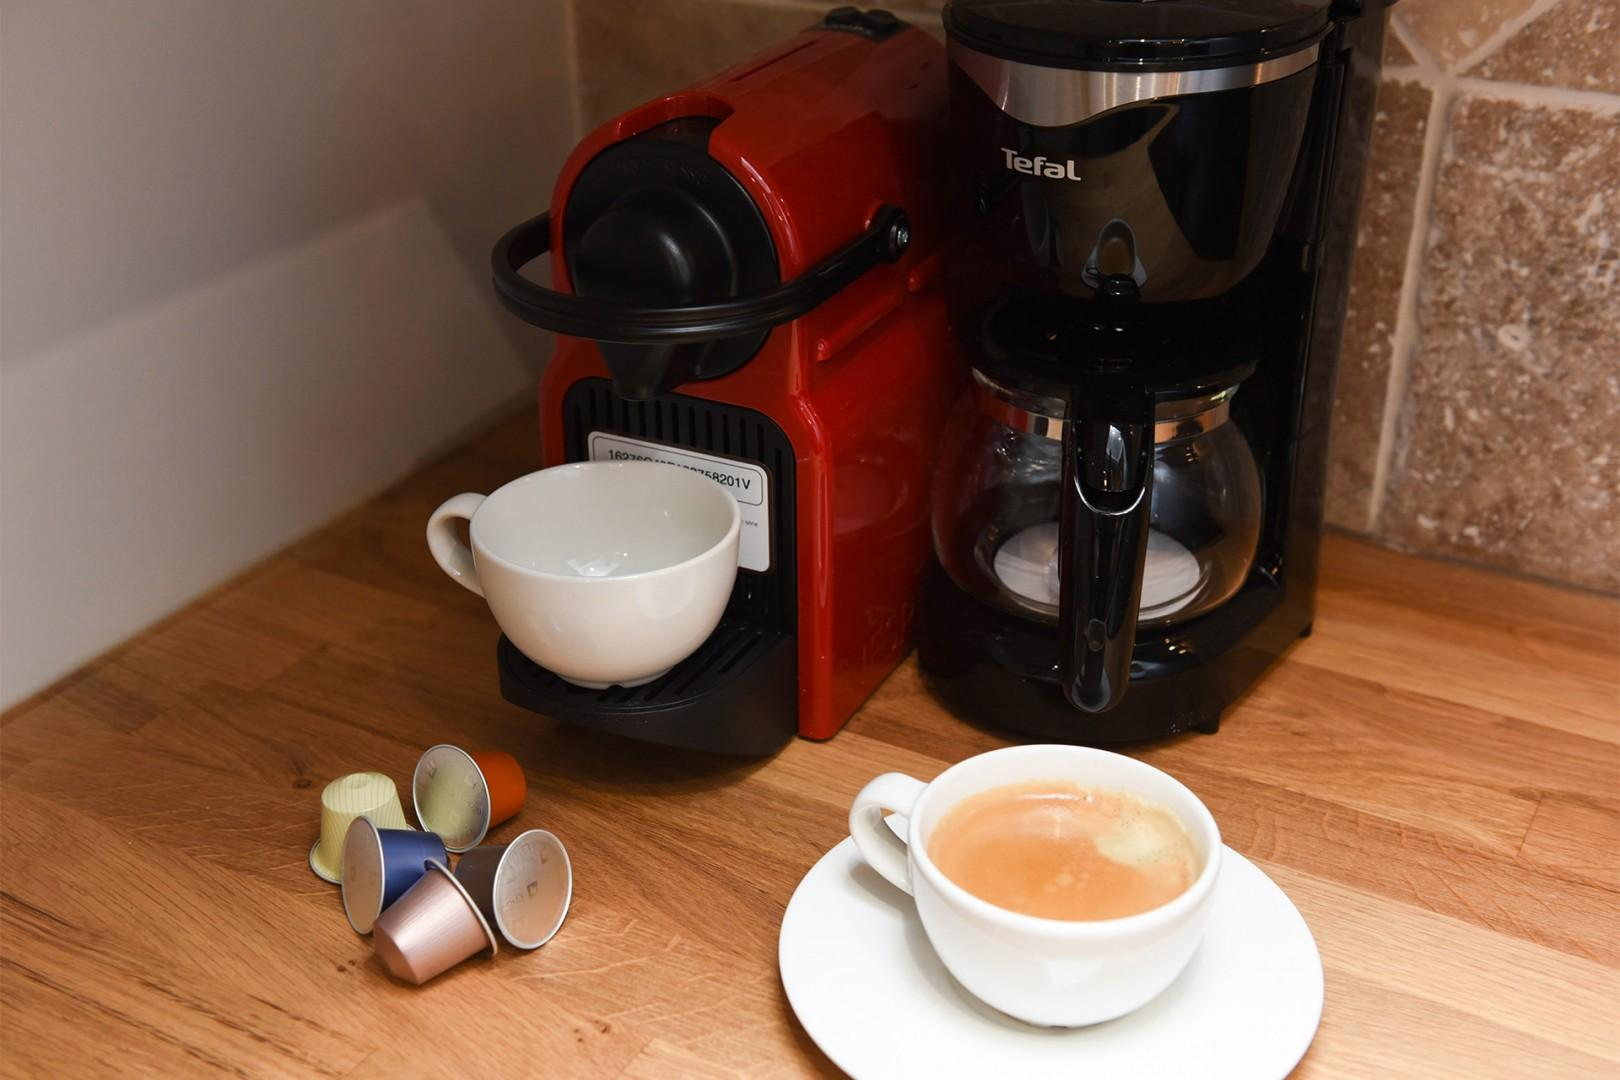 The kitchen is stocked with a Nespresso maker and capsules.